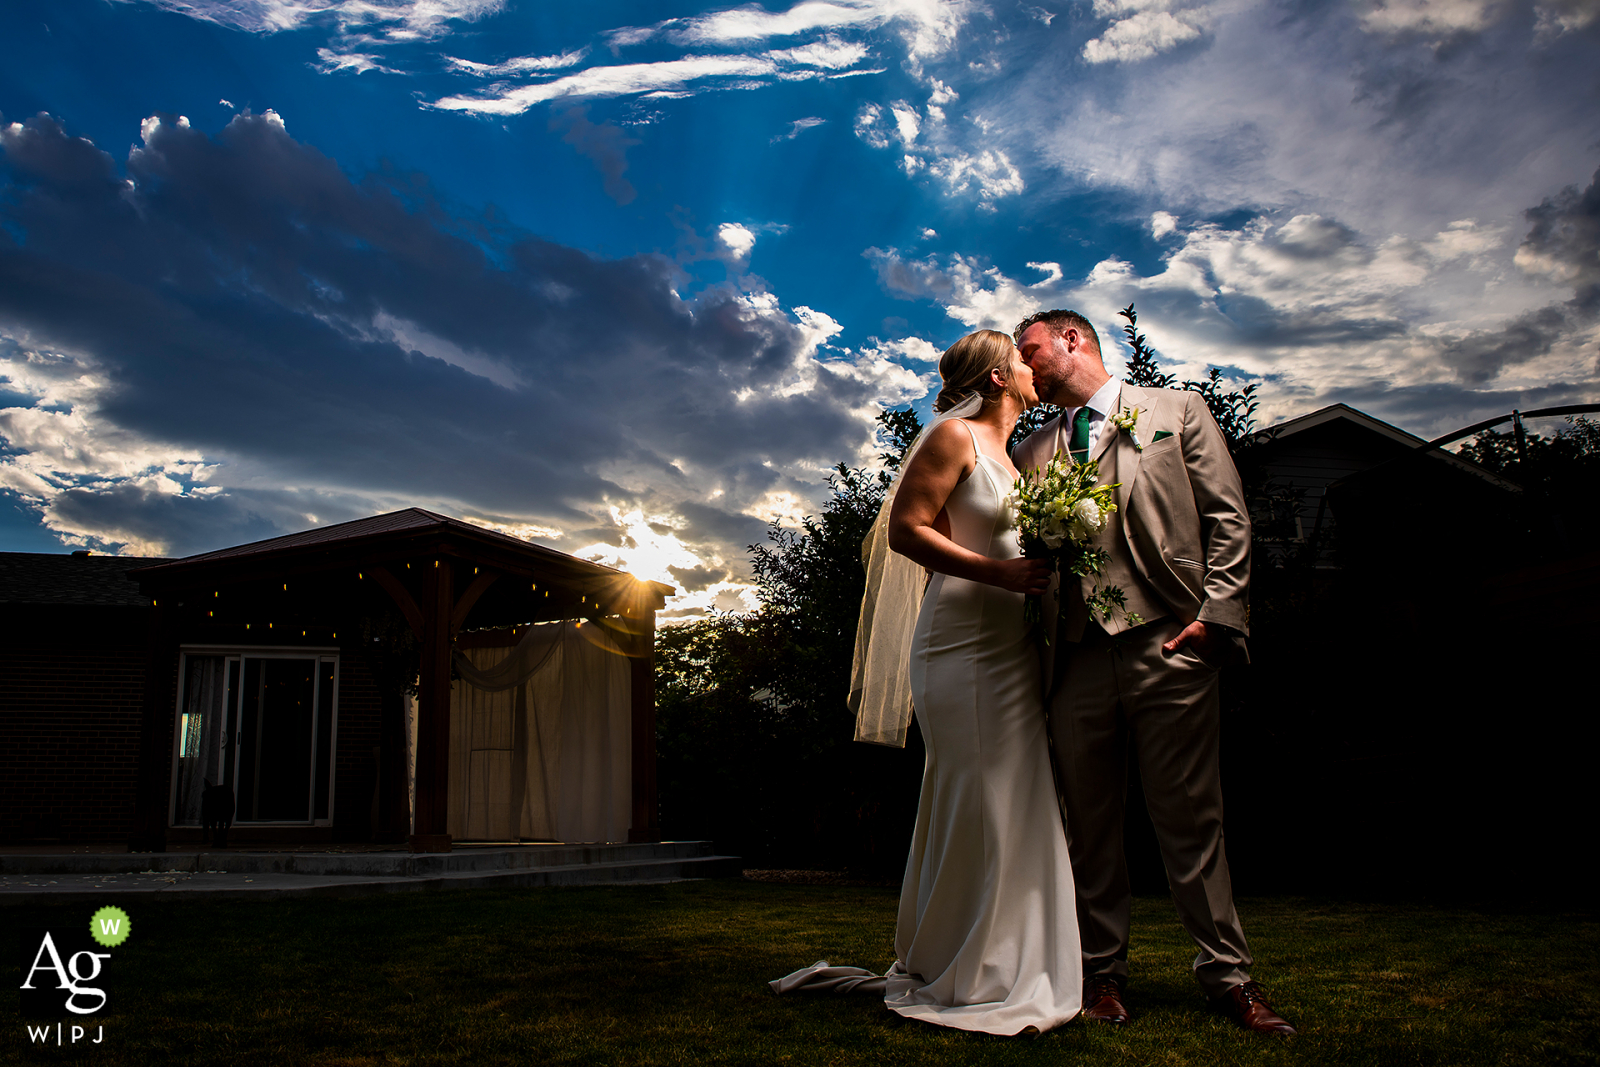 Thornton, CO sunset portrait of bride and groom during their backyard wedding